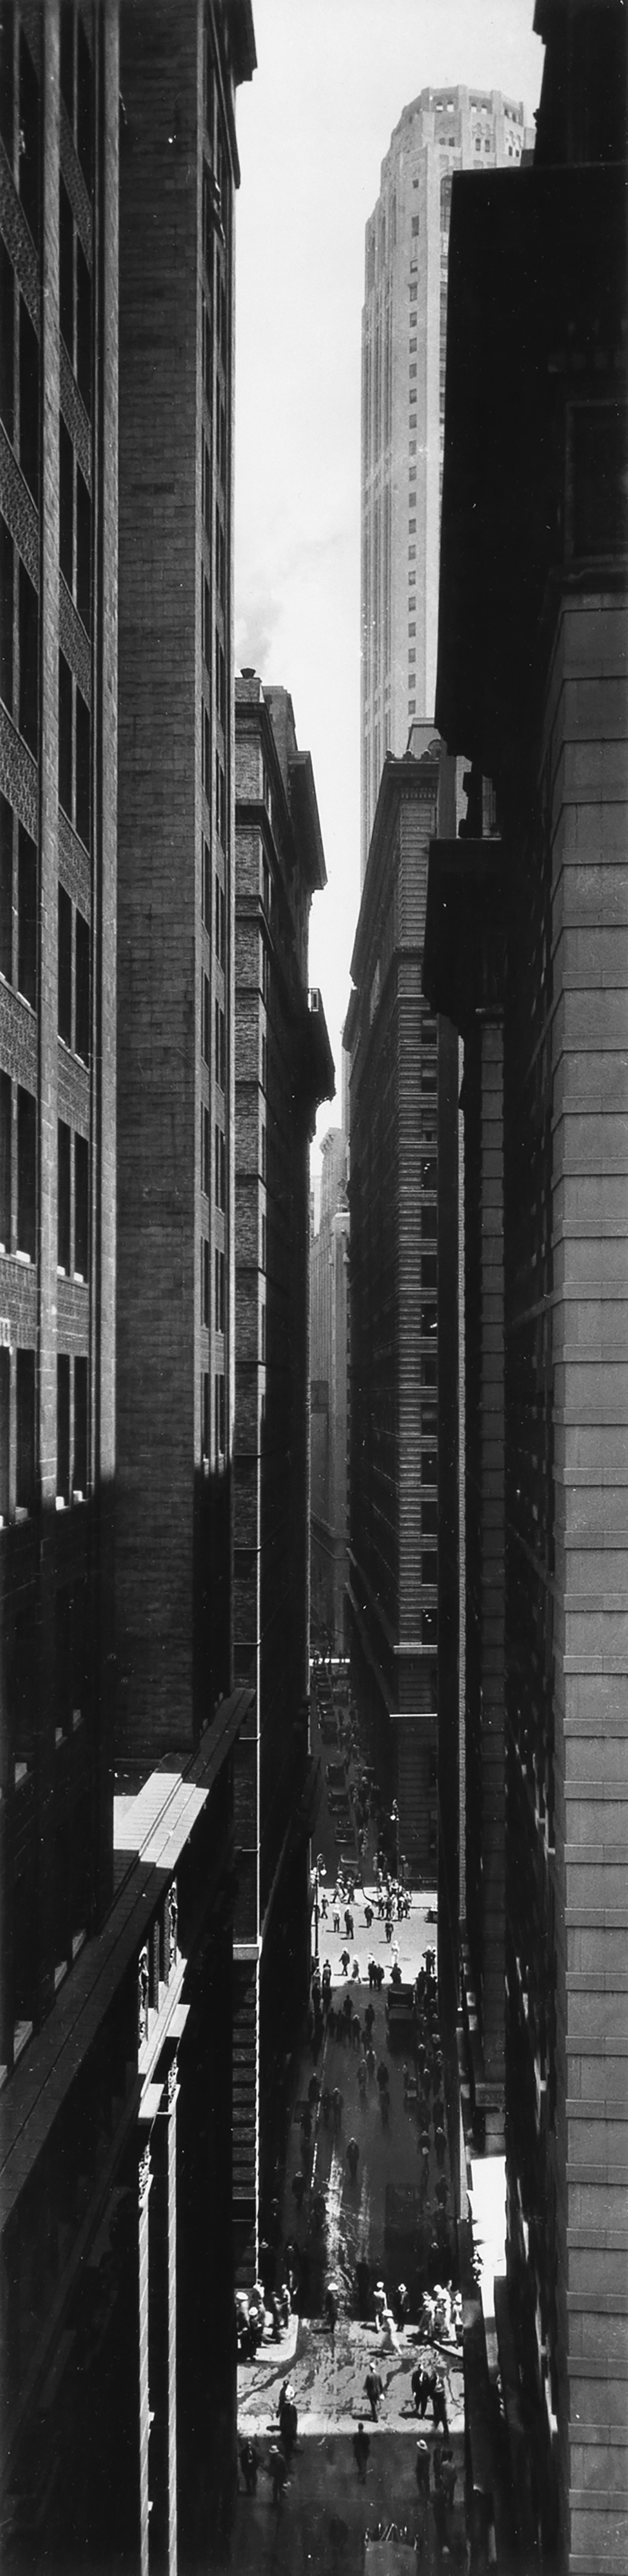 BERENICE ABBOTT (1898-1991) View of Exchange Place from Broadway, New York.